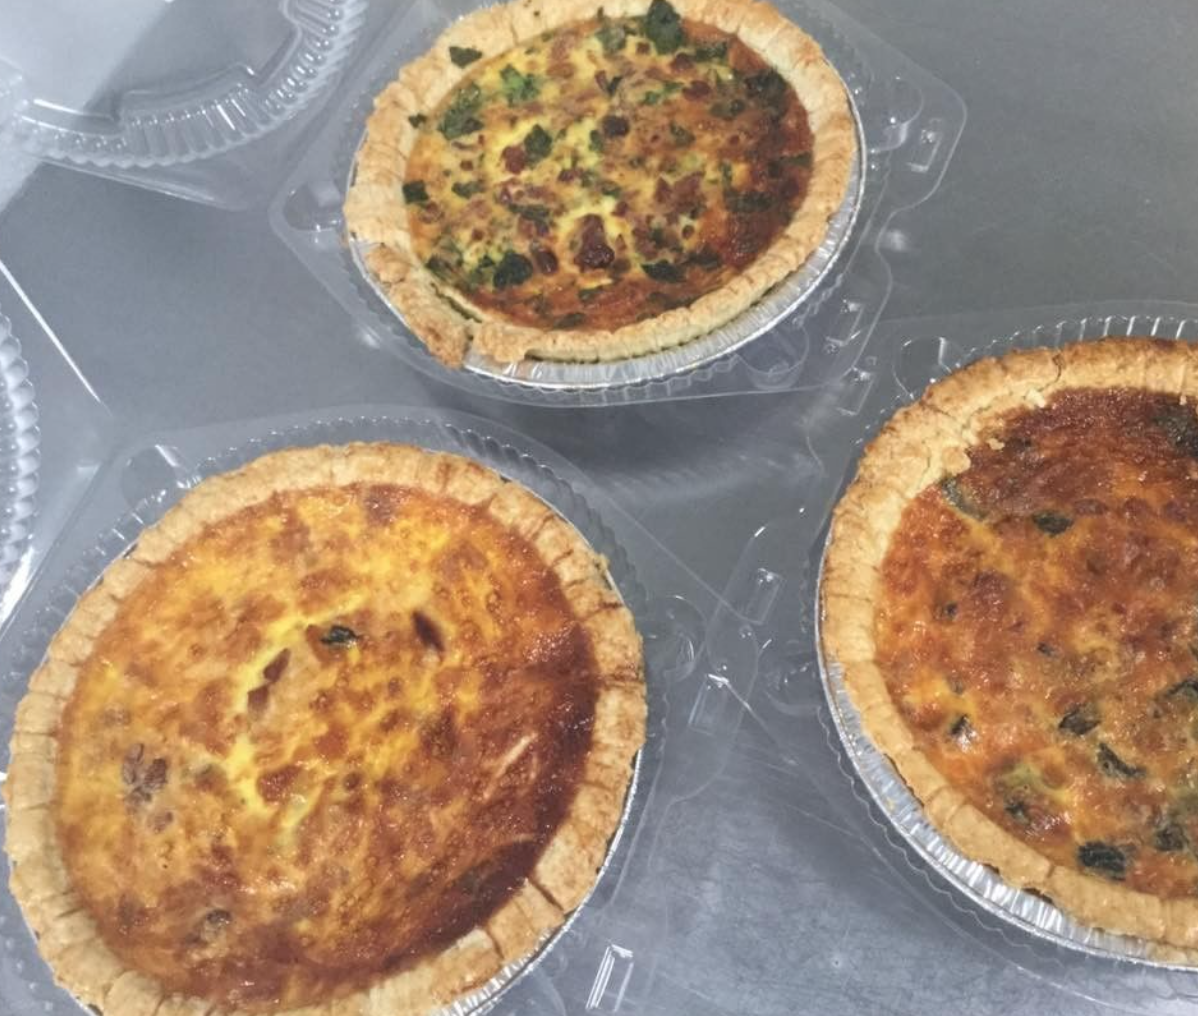 quiche, quiche, and more quiche!